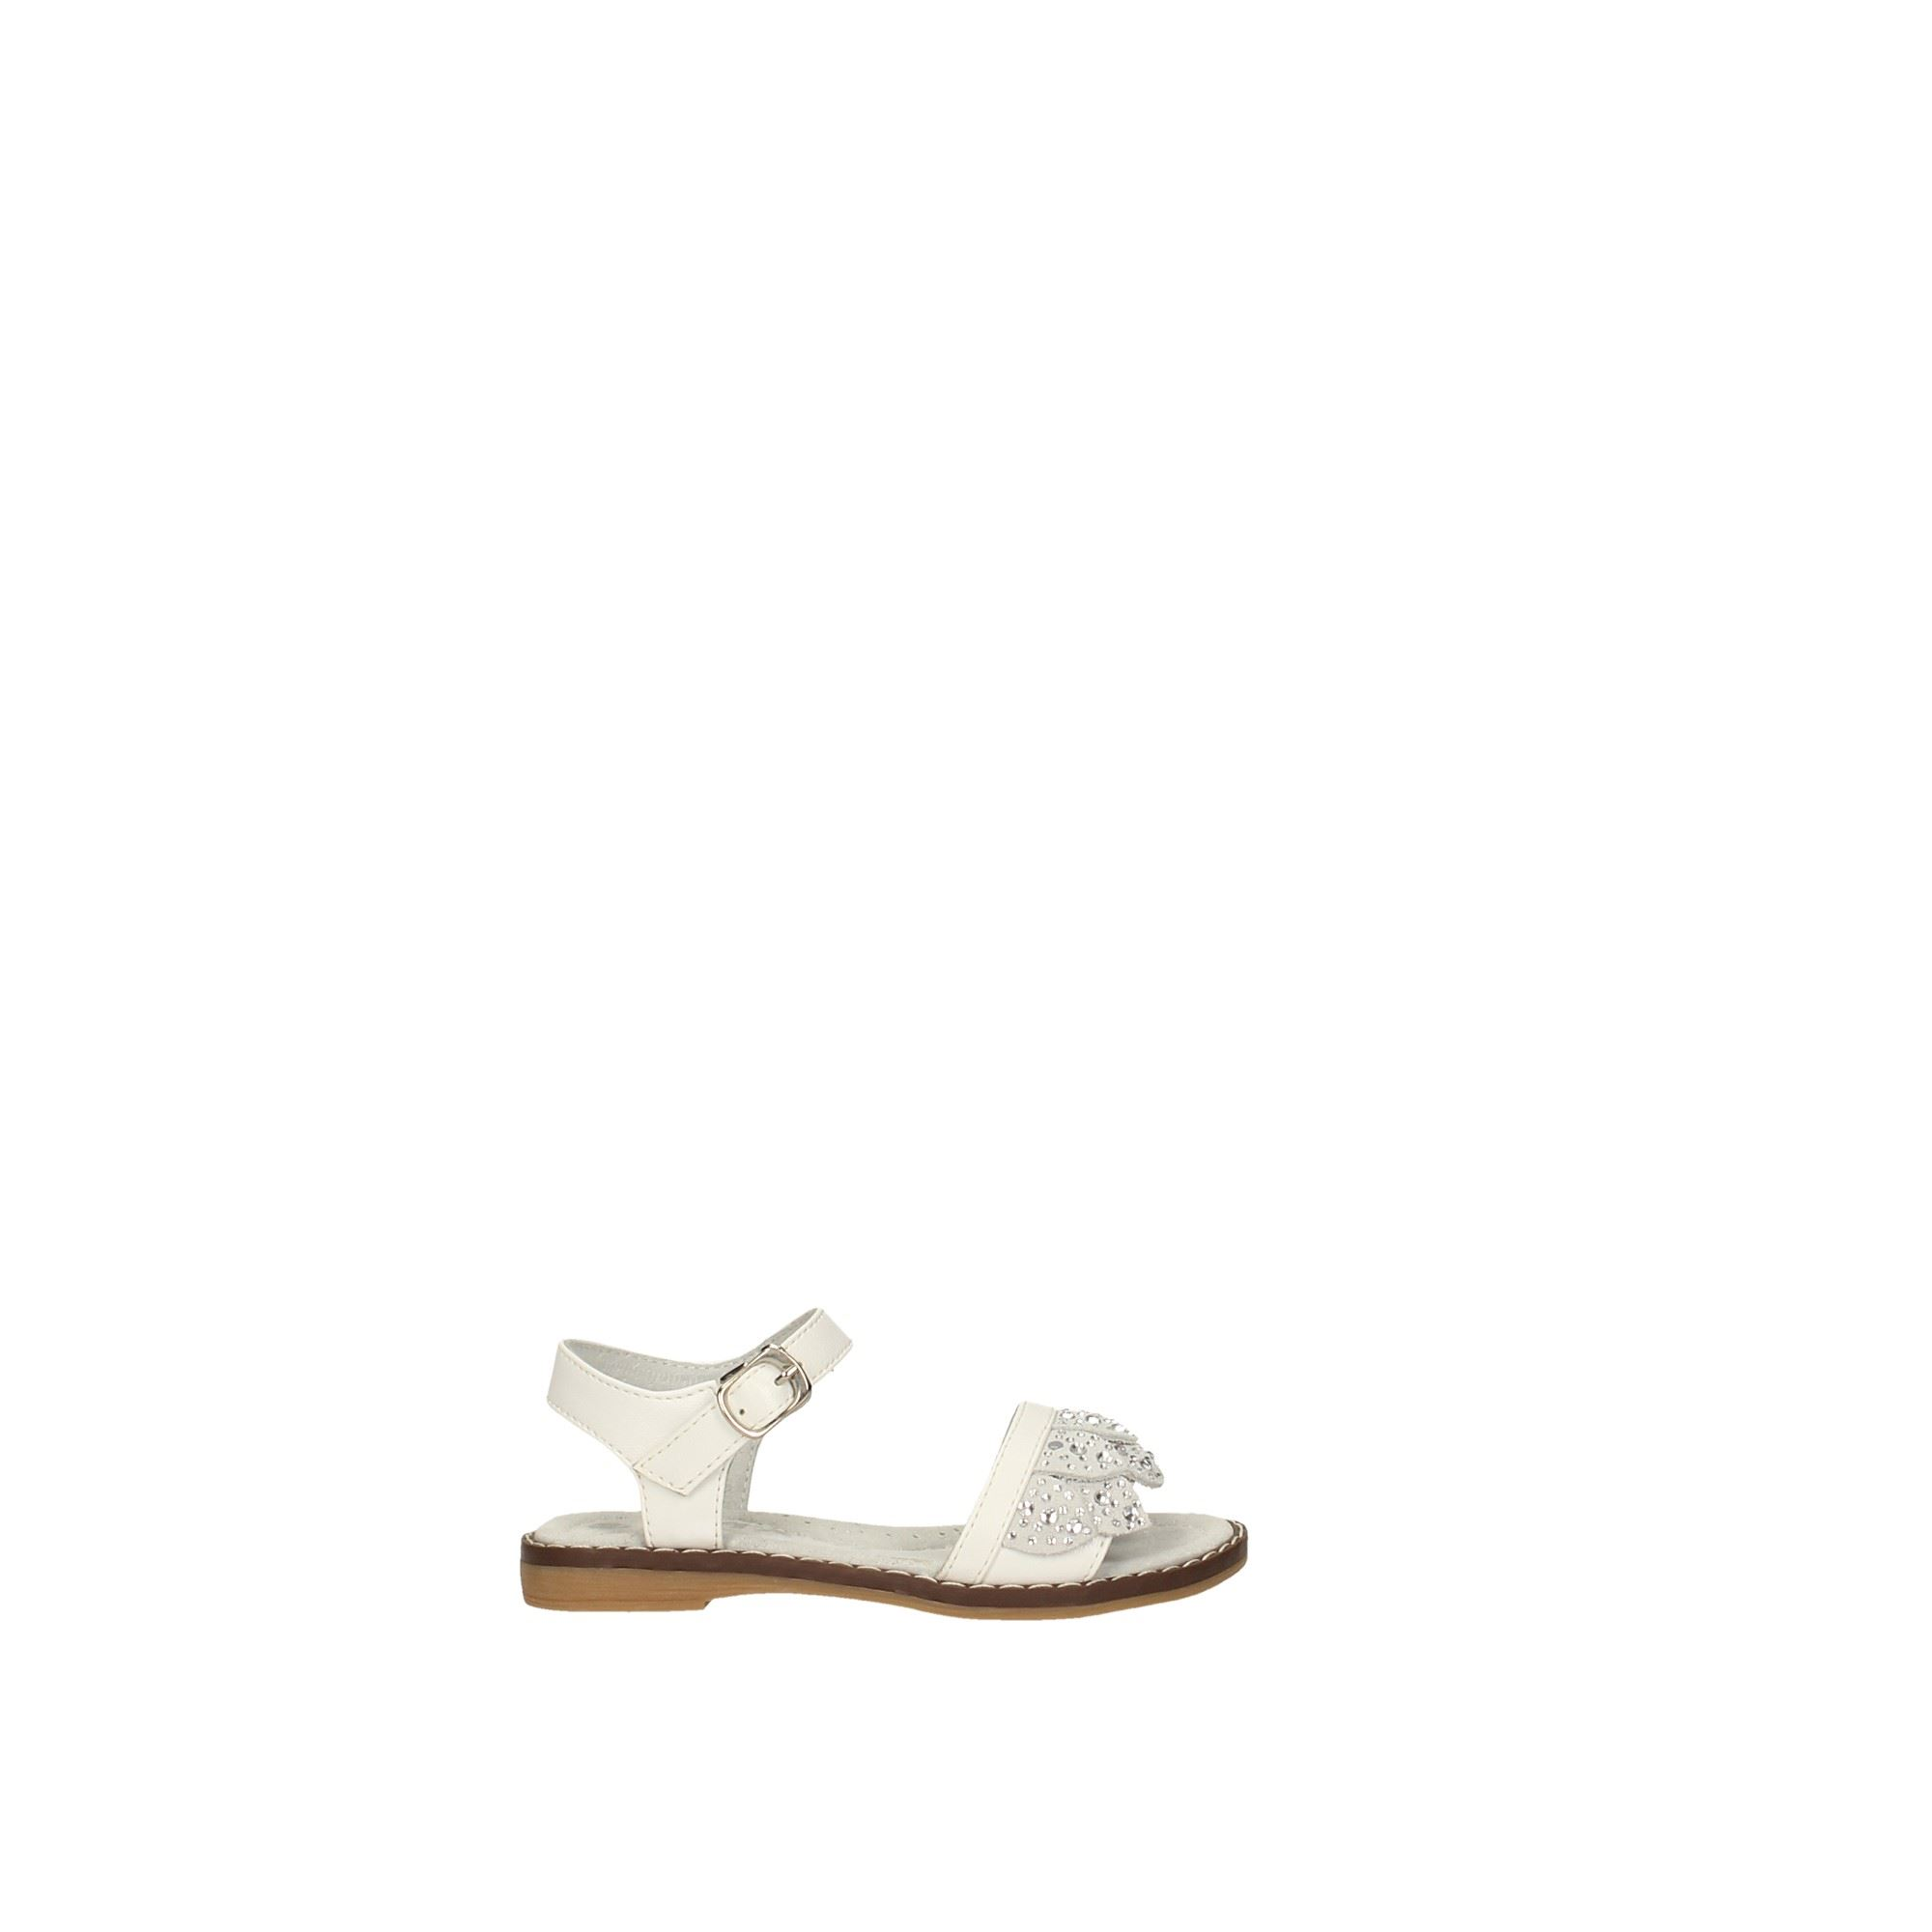 Tata Italia Shoes Junior Sandali Bianco H064-B5